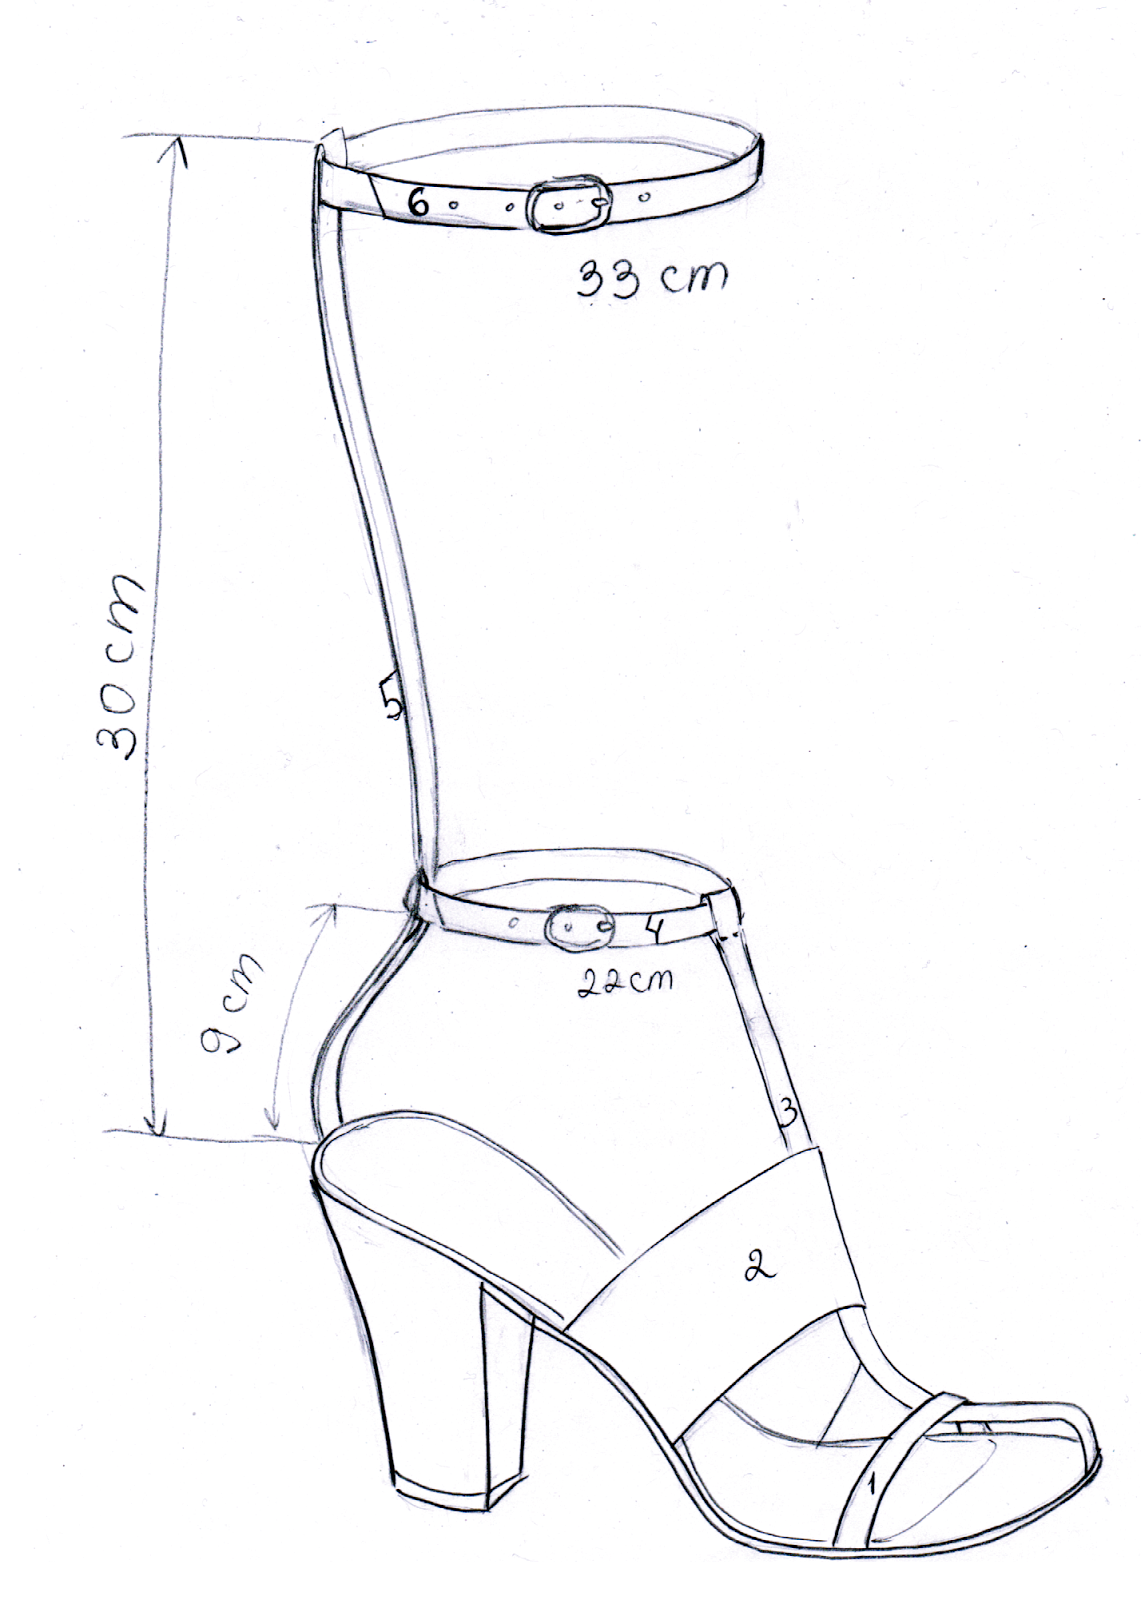 Making Shoes How To Make Rihanna X Factor Shoes By